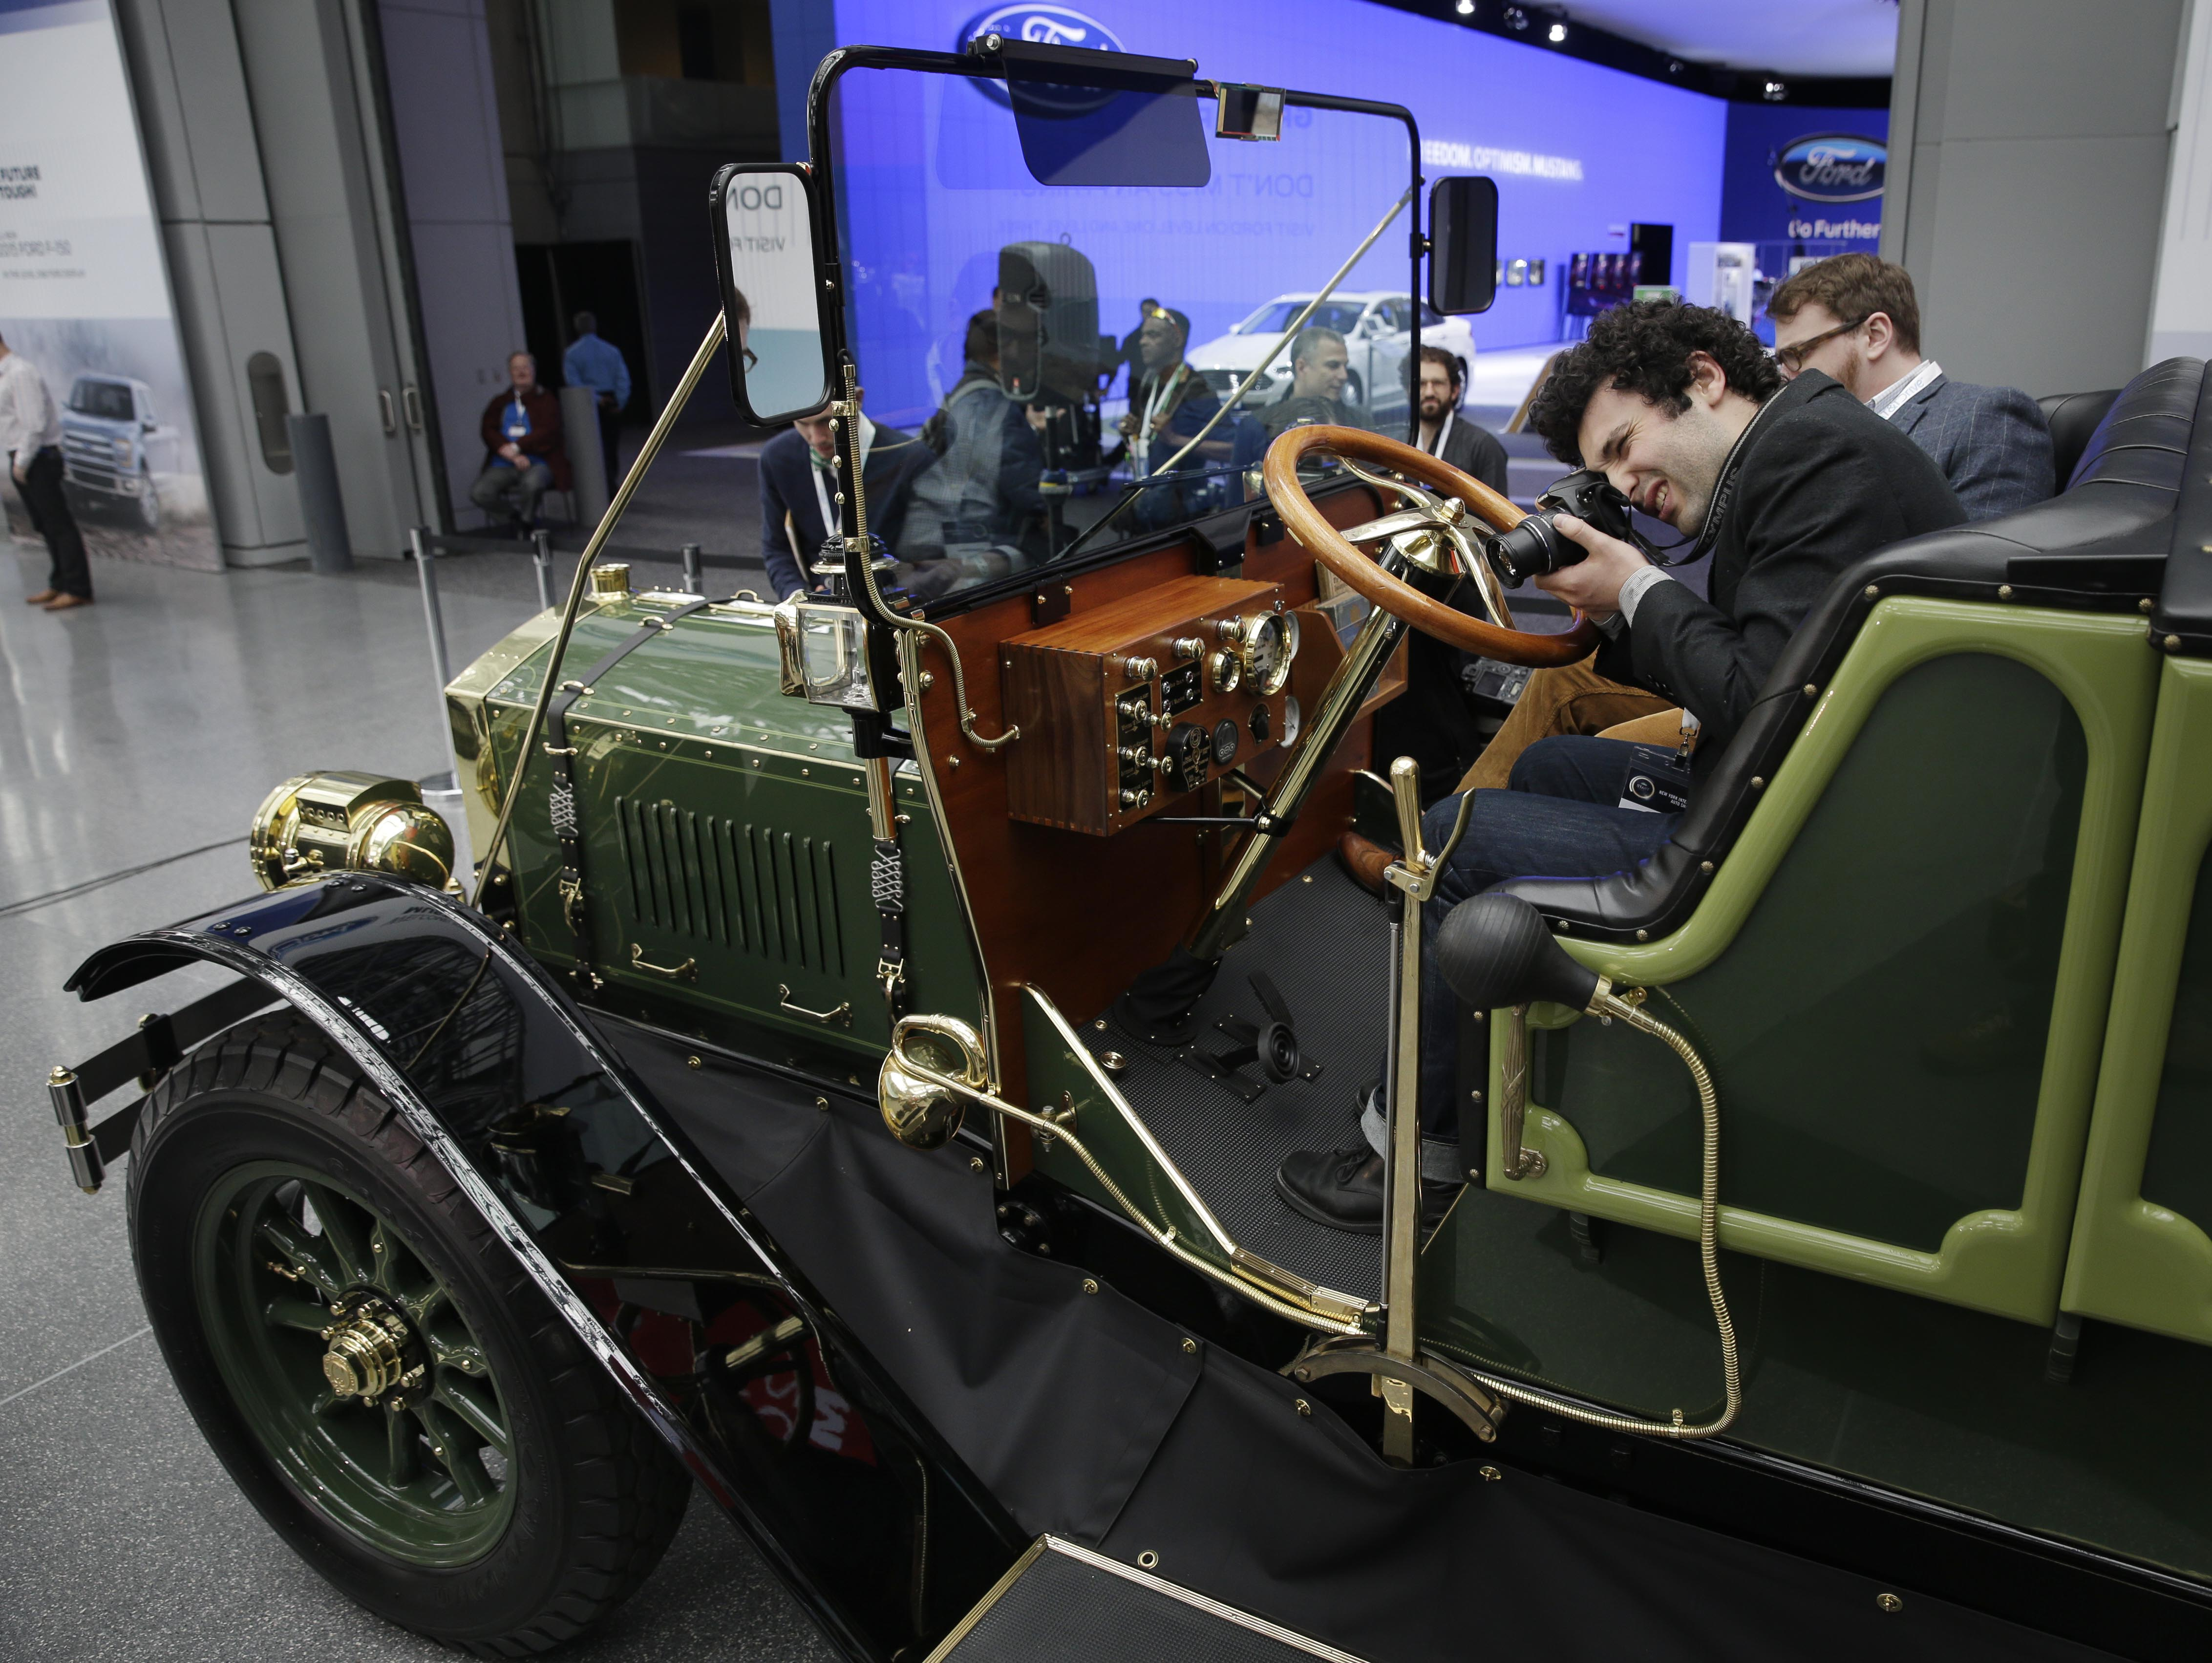 New York - Old Timey Car To Replace NYC Horse Carriages Shown